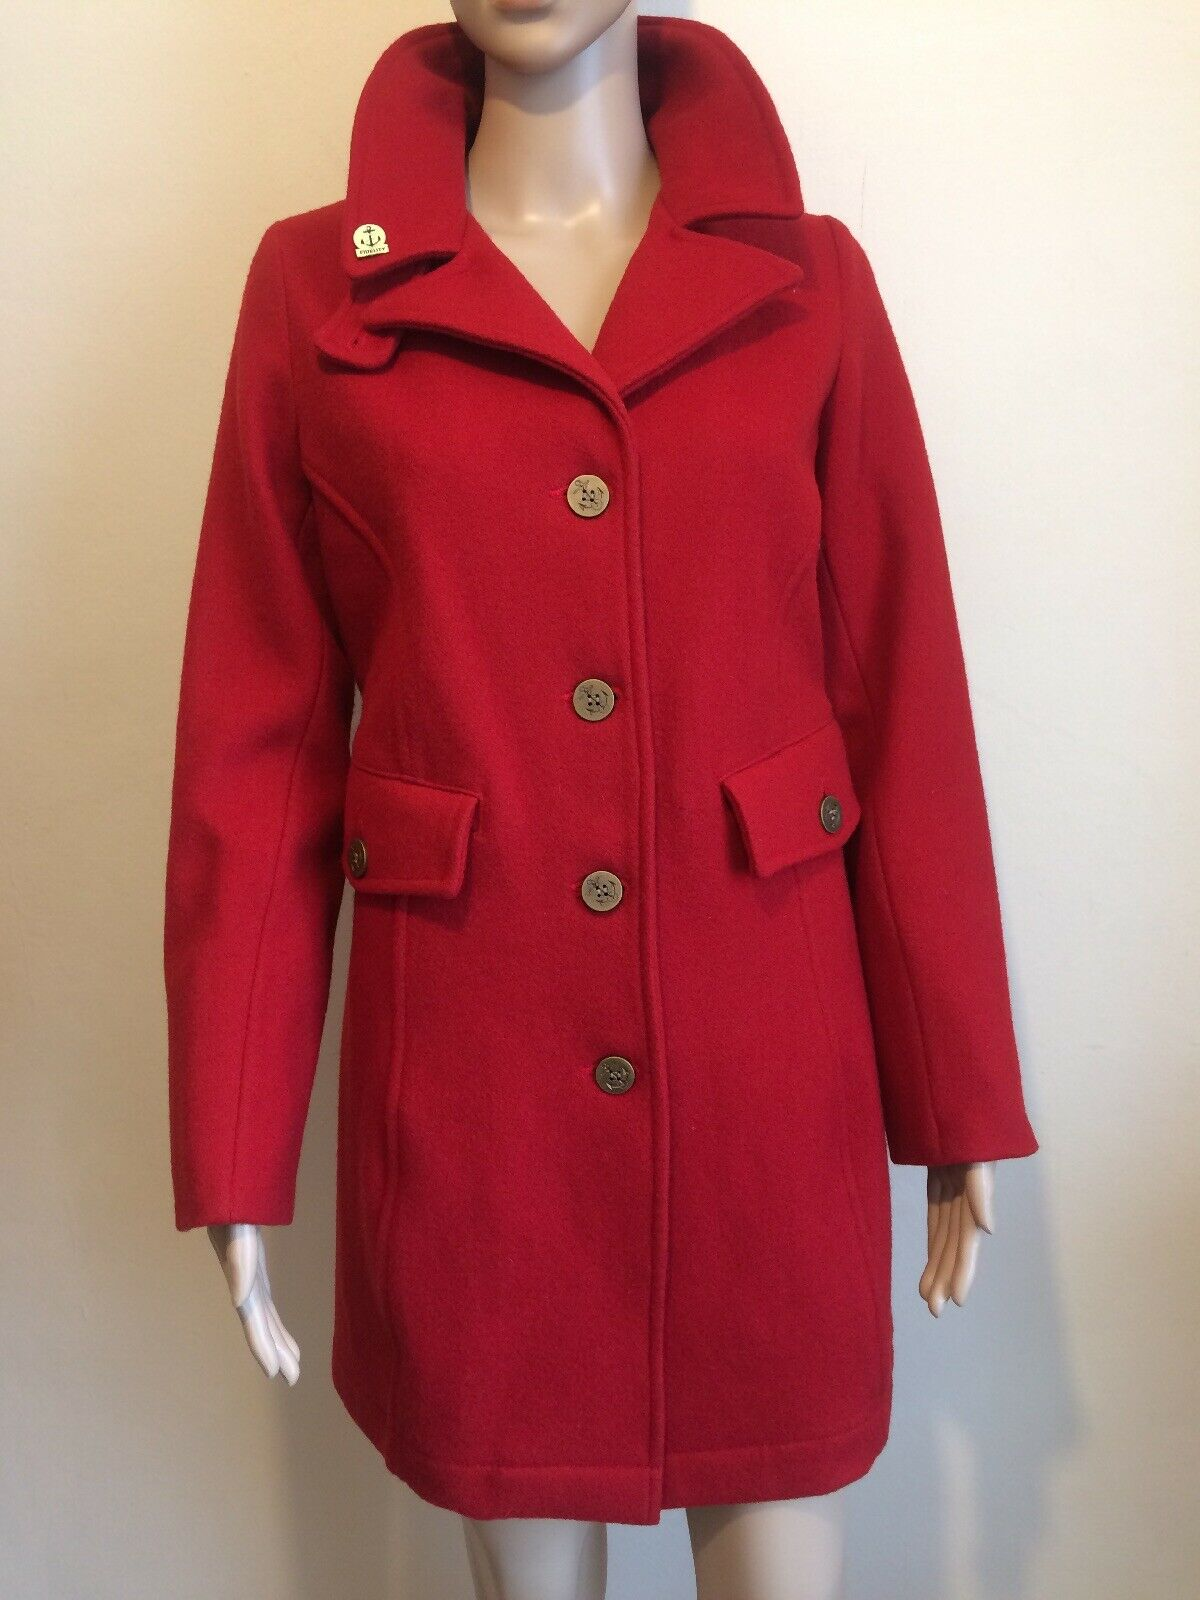 Fidelity Gerard & Stewart Barney NY Rouge Laine Manteau Taille S 10